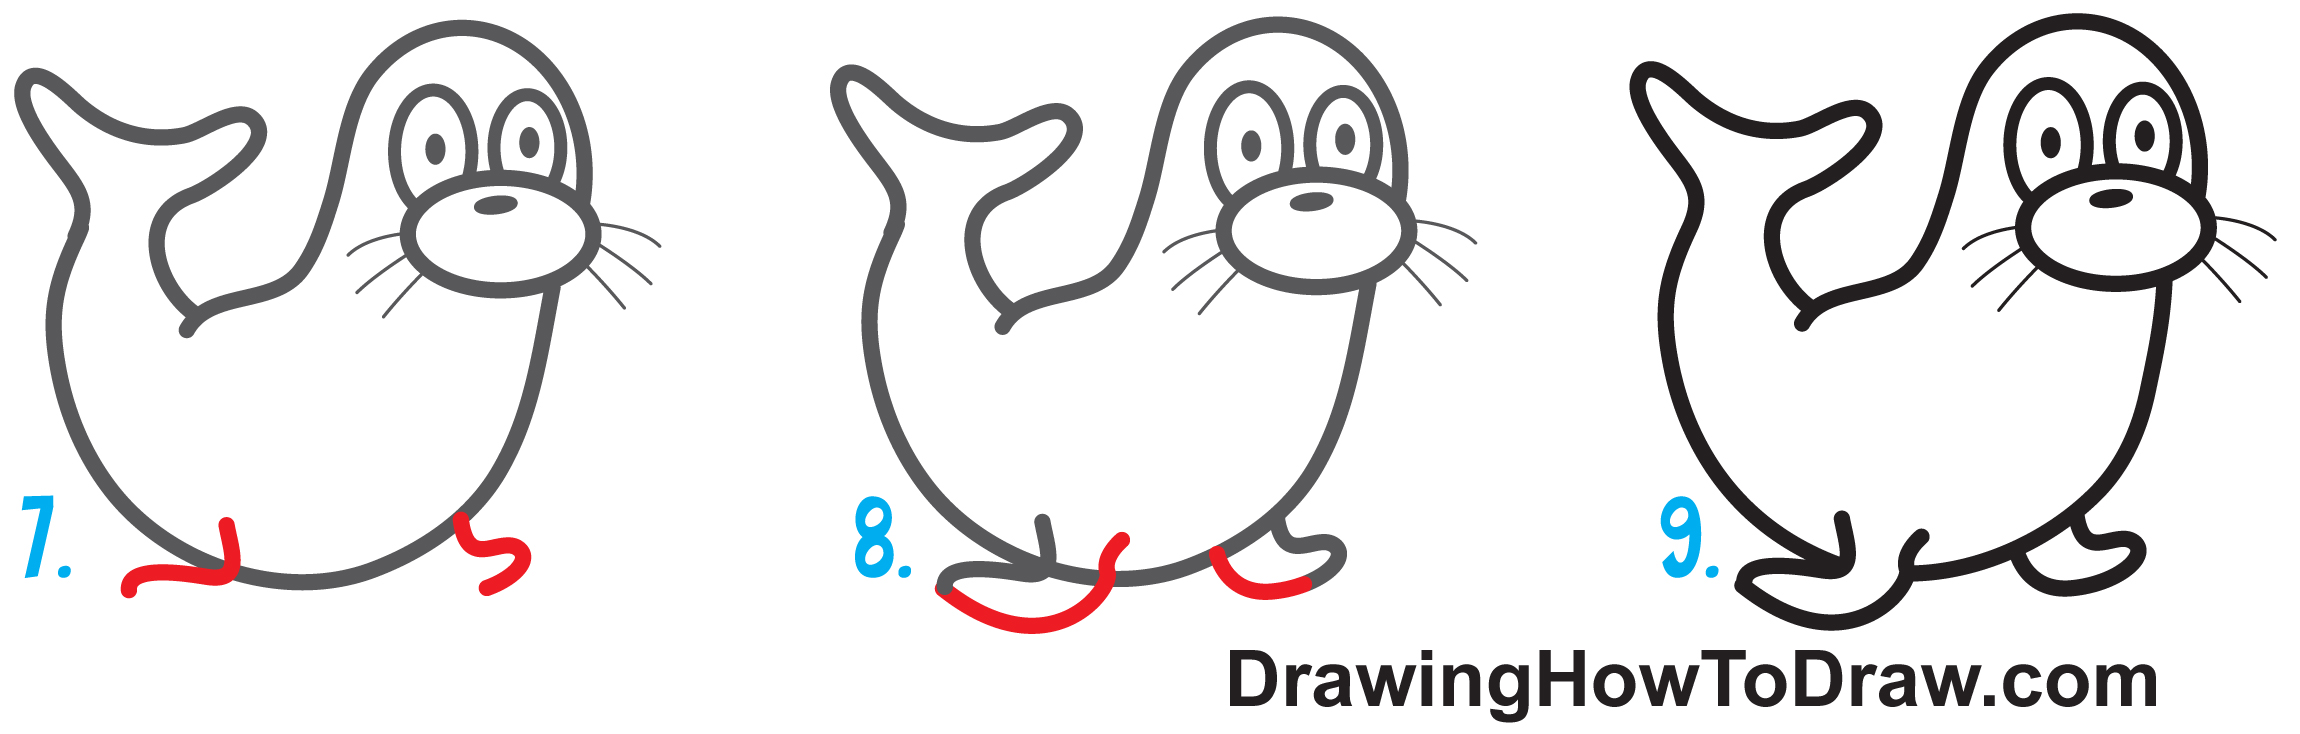 Learn How to Draw a Cartoon Otter Easy Step by Step Drawing Tutorial for Kids & Beginners